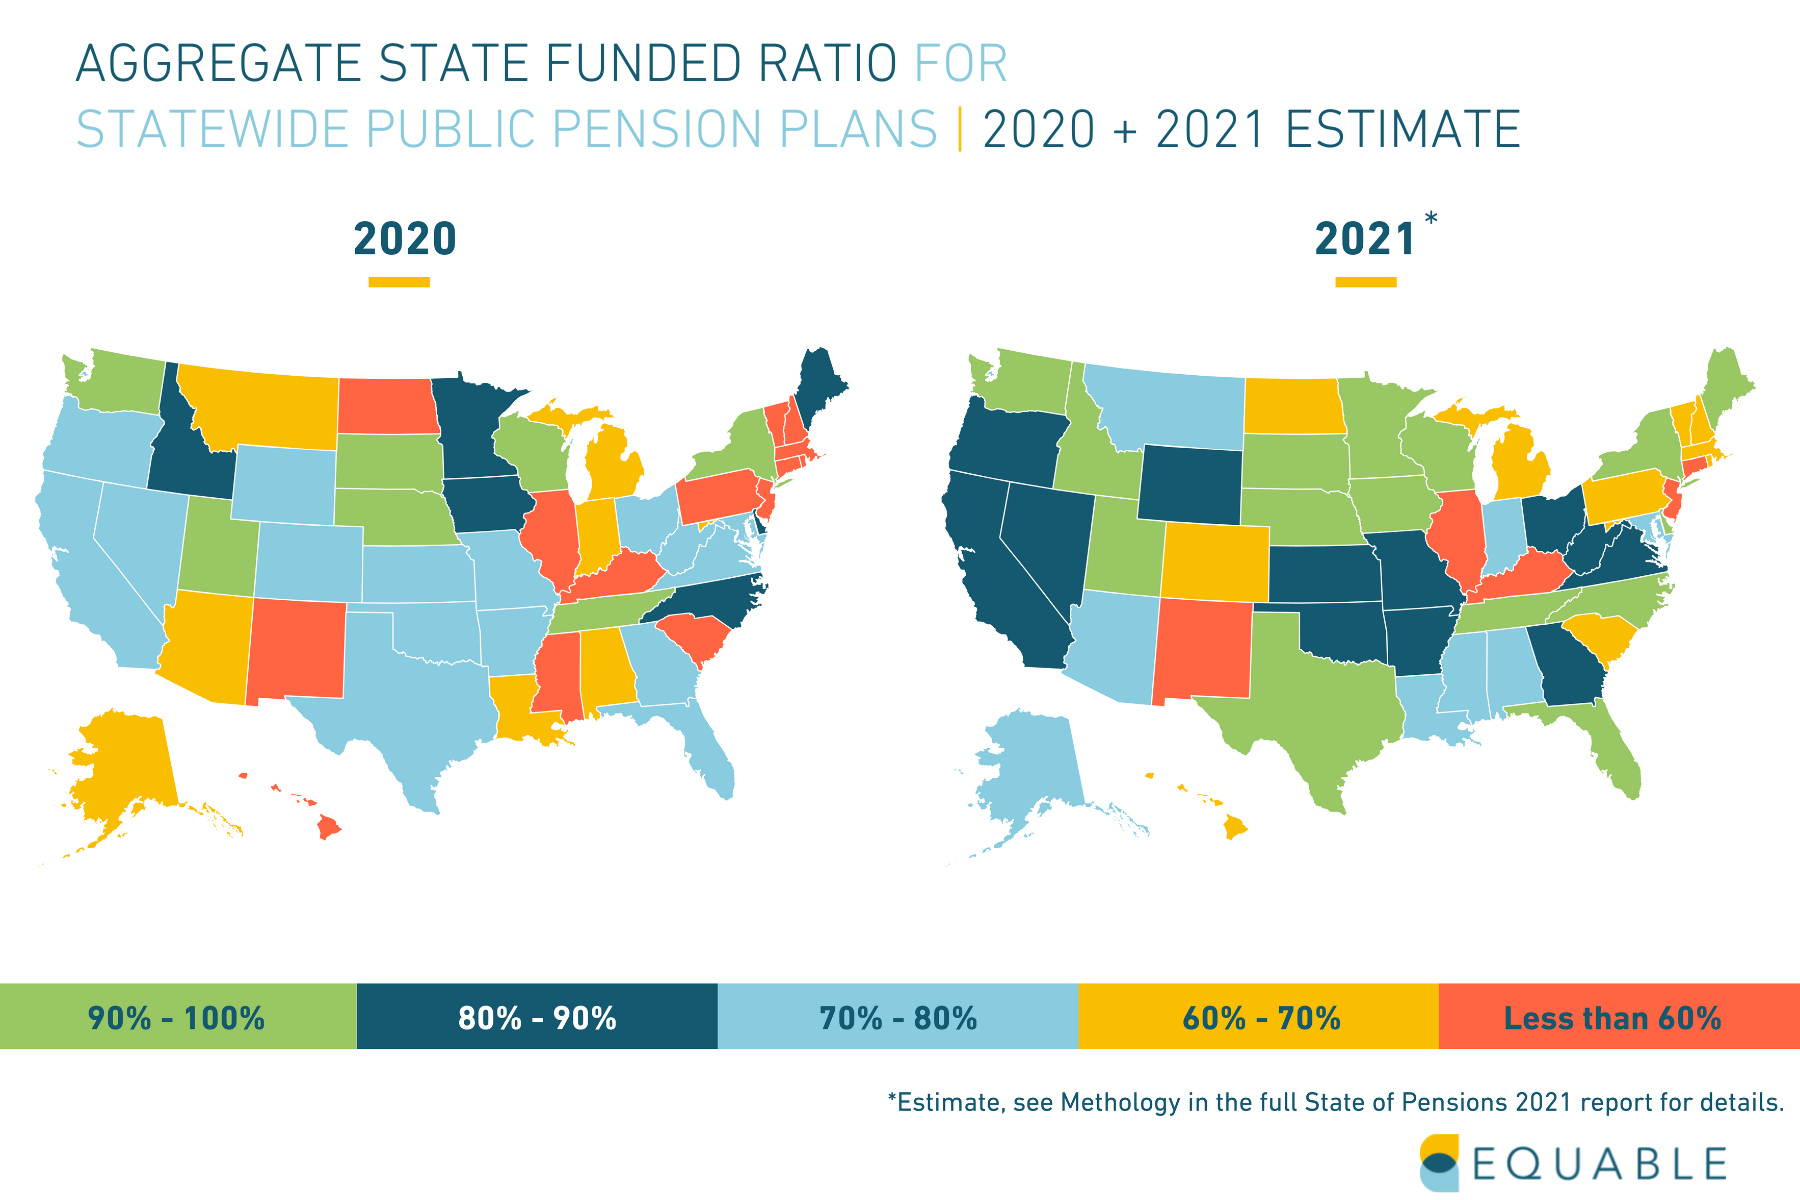 Funded Ratio by State